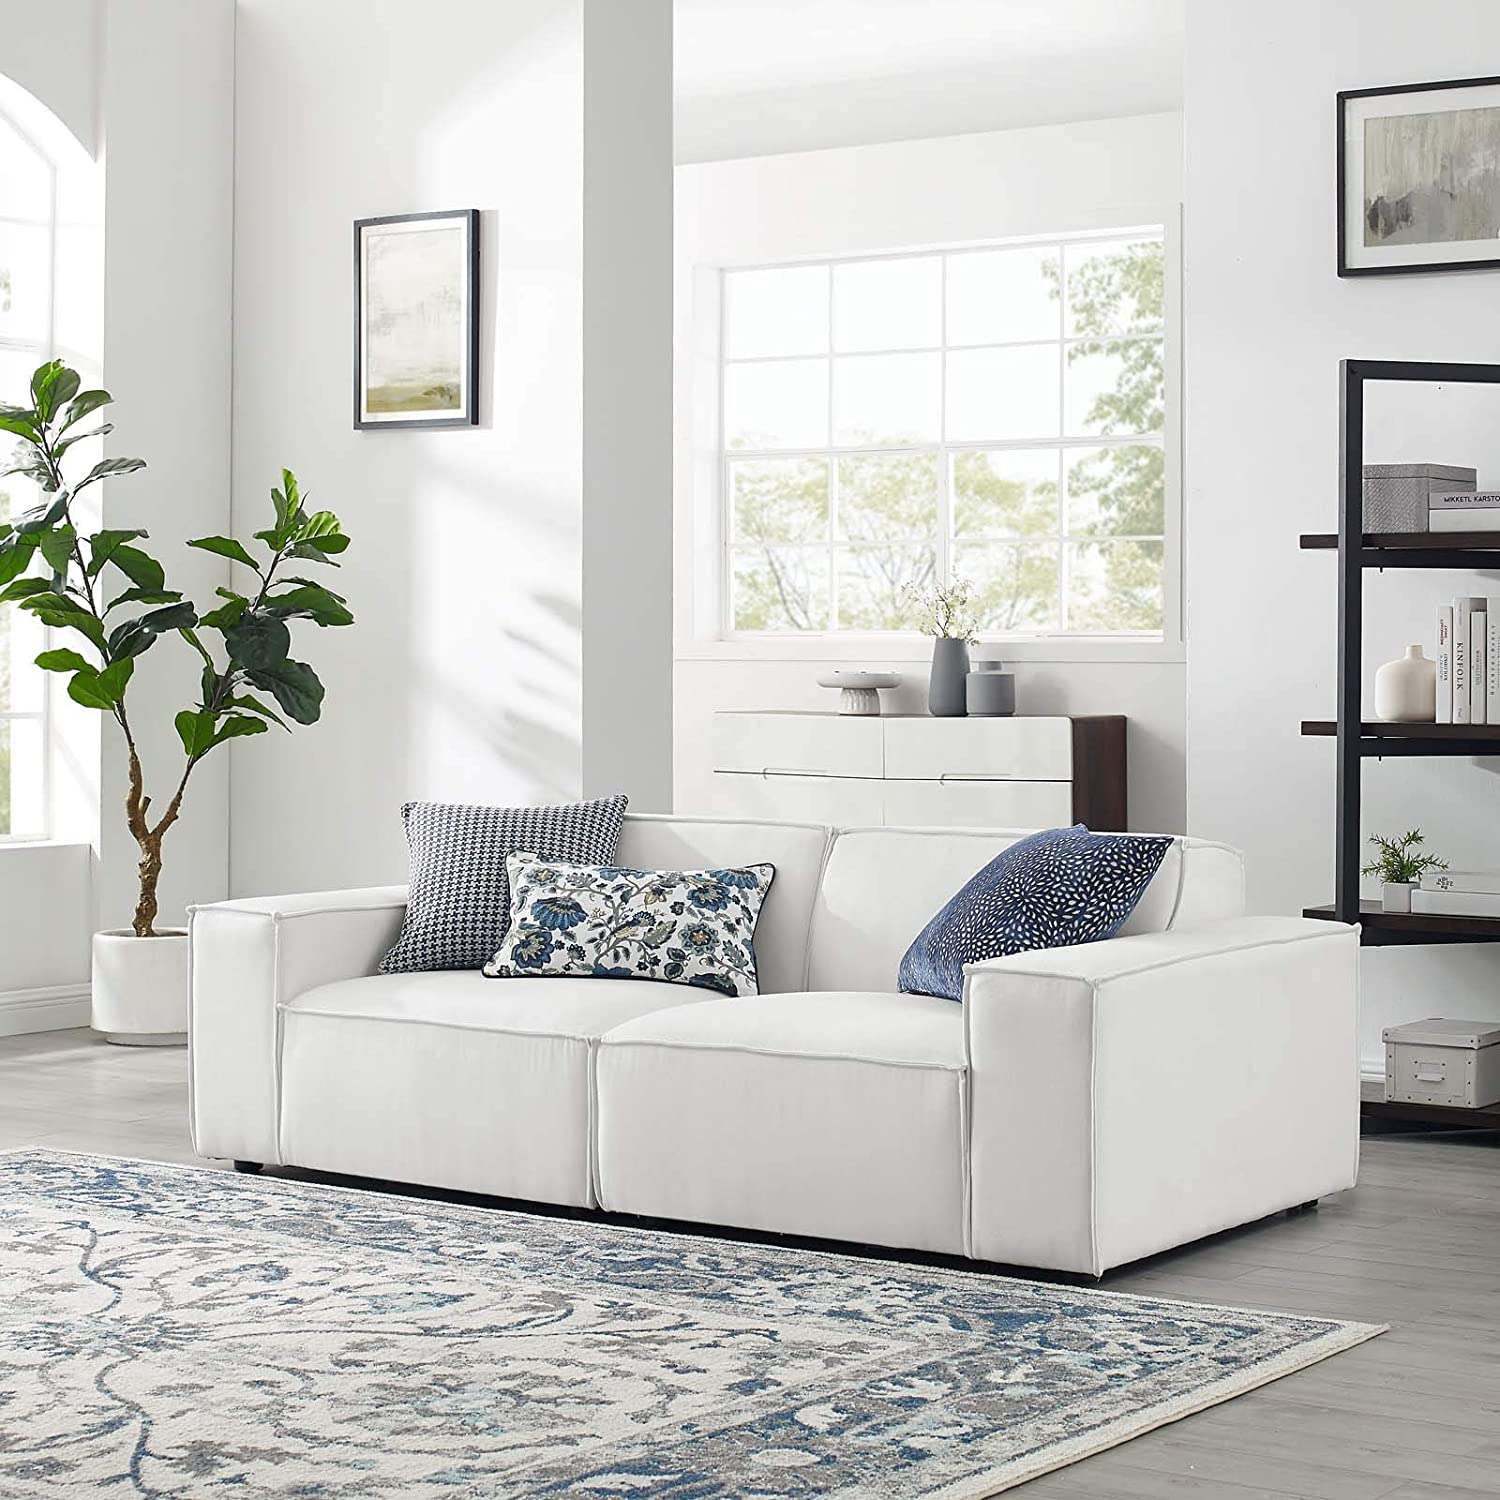 Modway Restore 2-Piece Upholstered Sectional Sofa in White